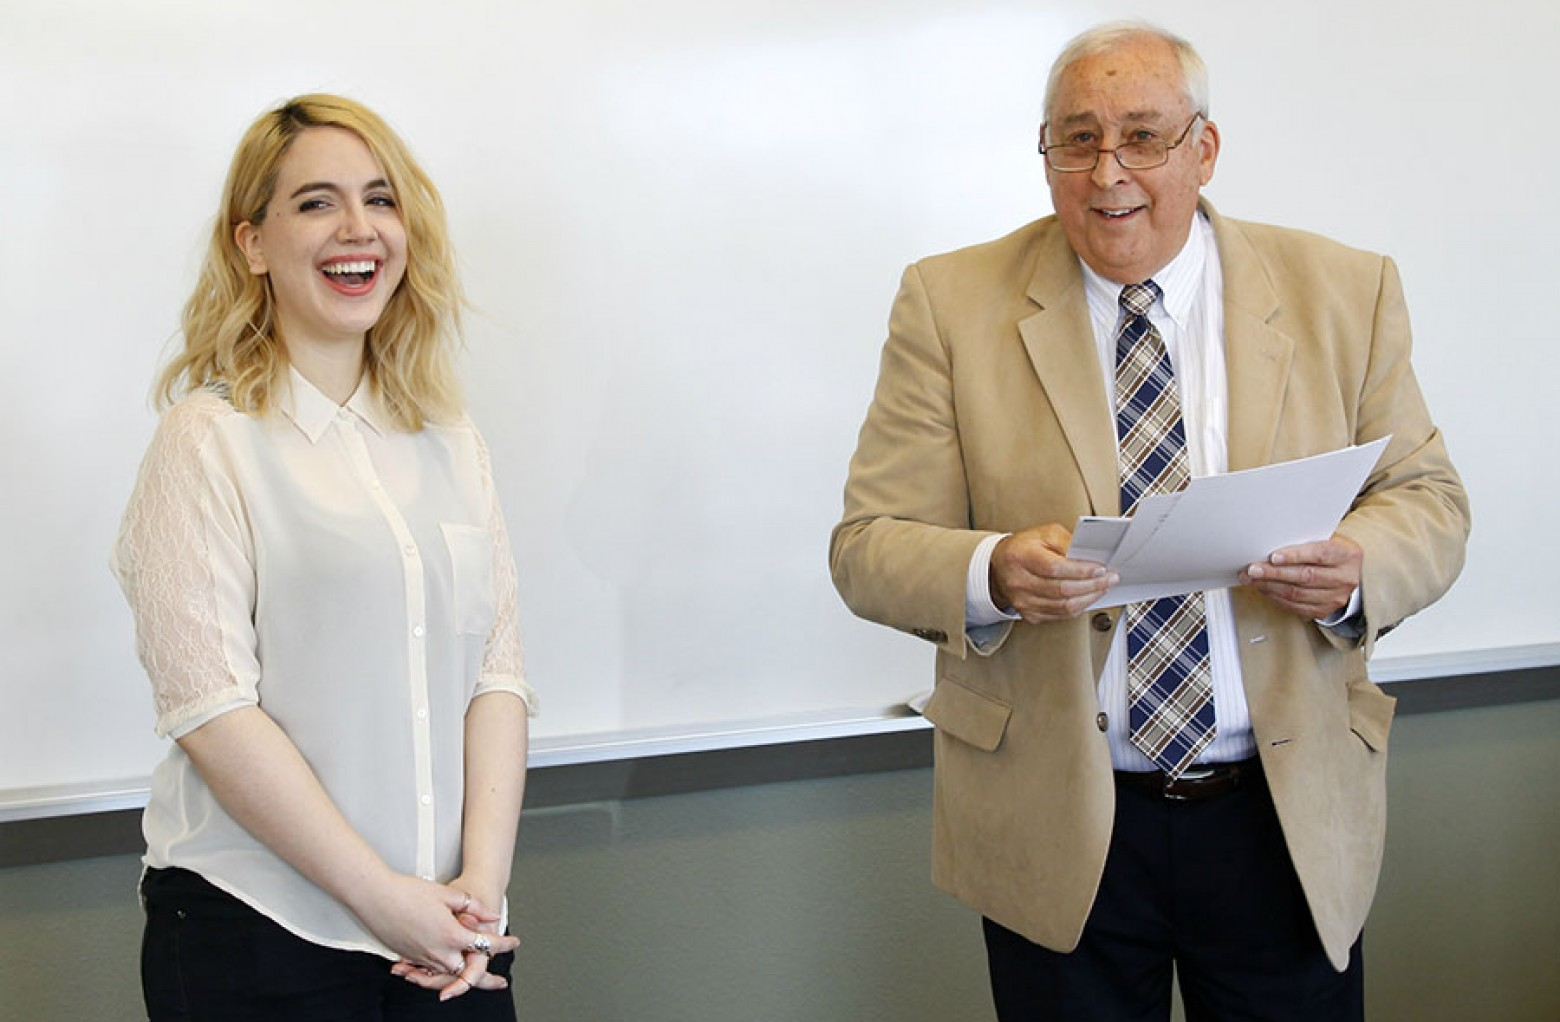 csu eap essay prompts And research papers these results sample act essays and scores are  college sample act essays and scores readiness assessment is csu eap essay prompts a.